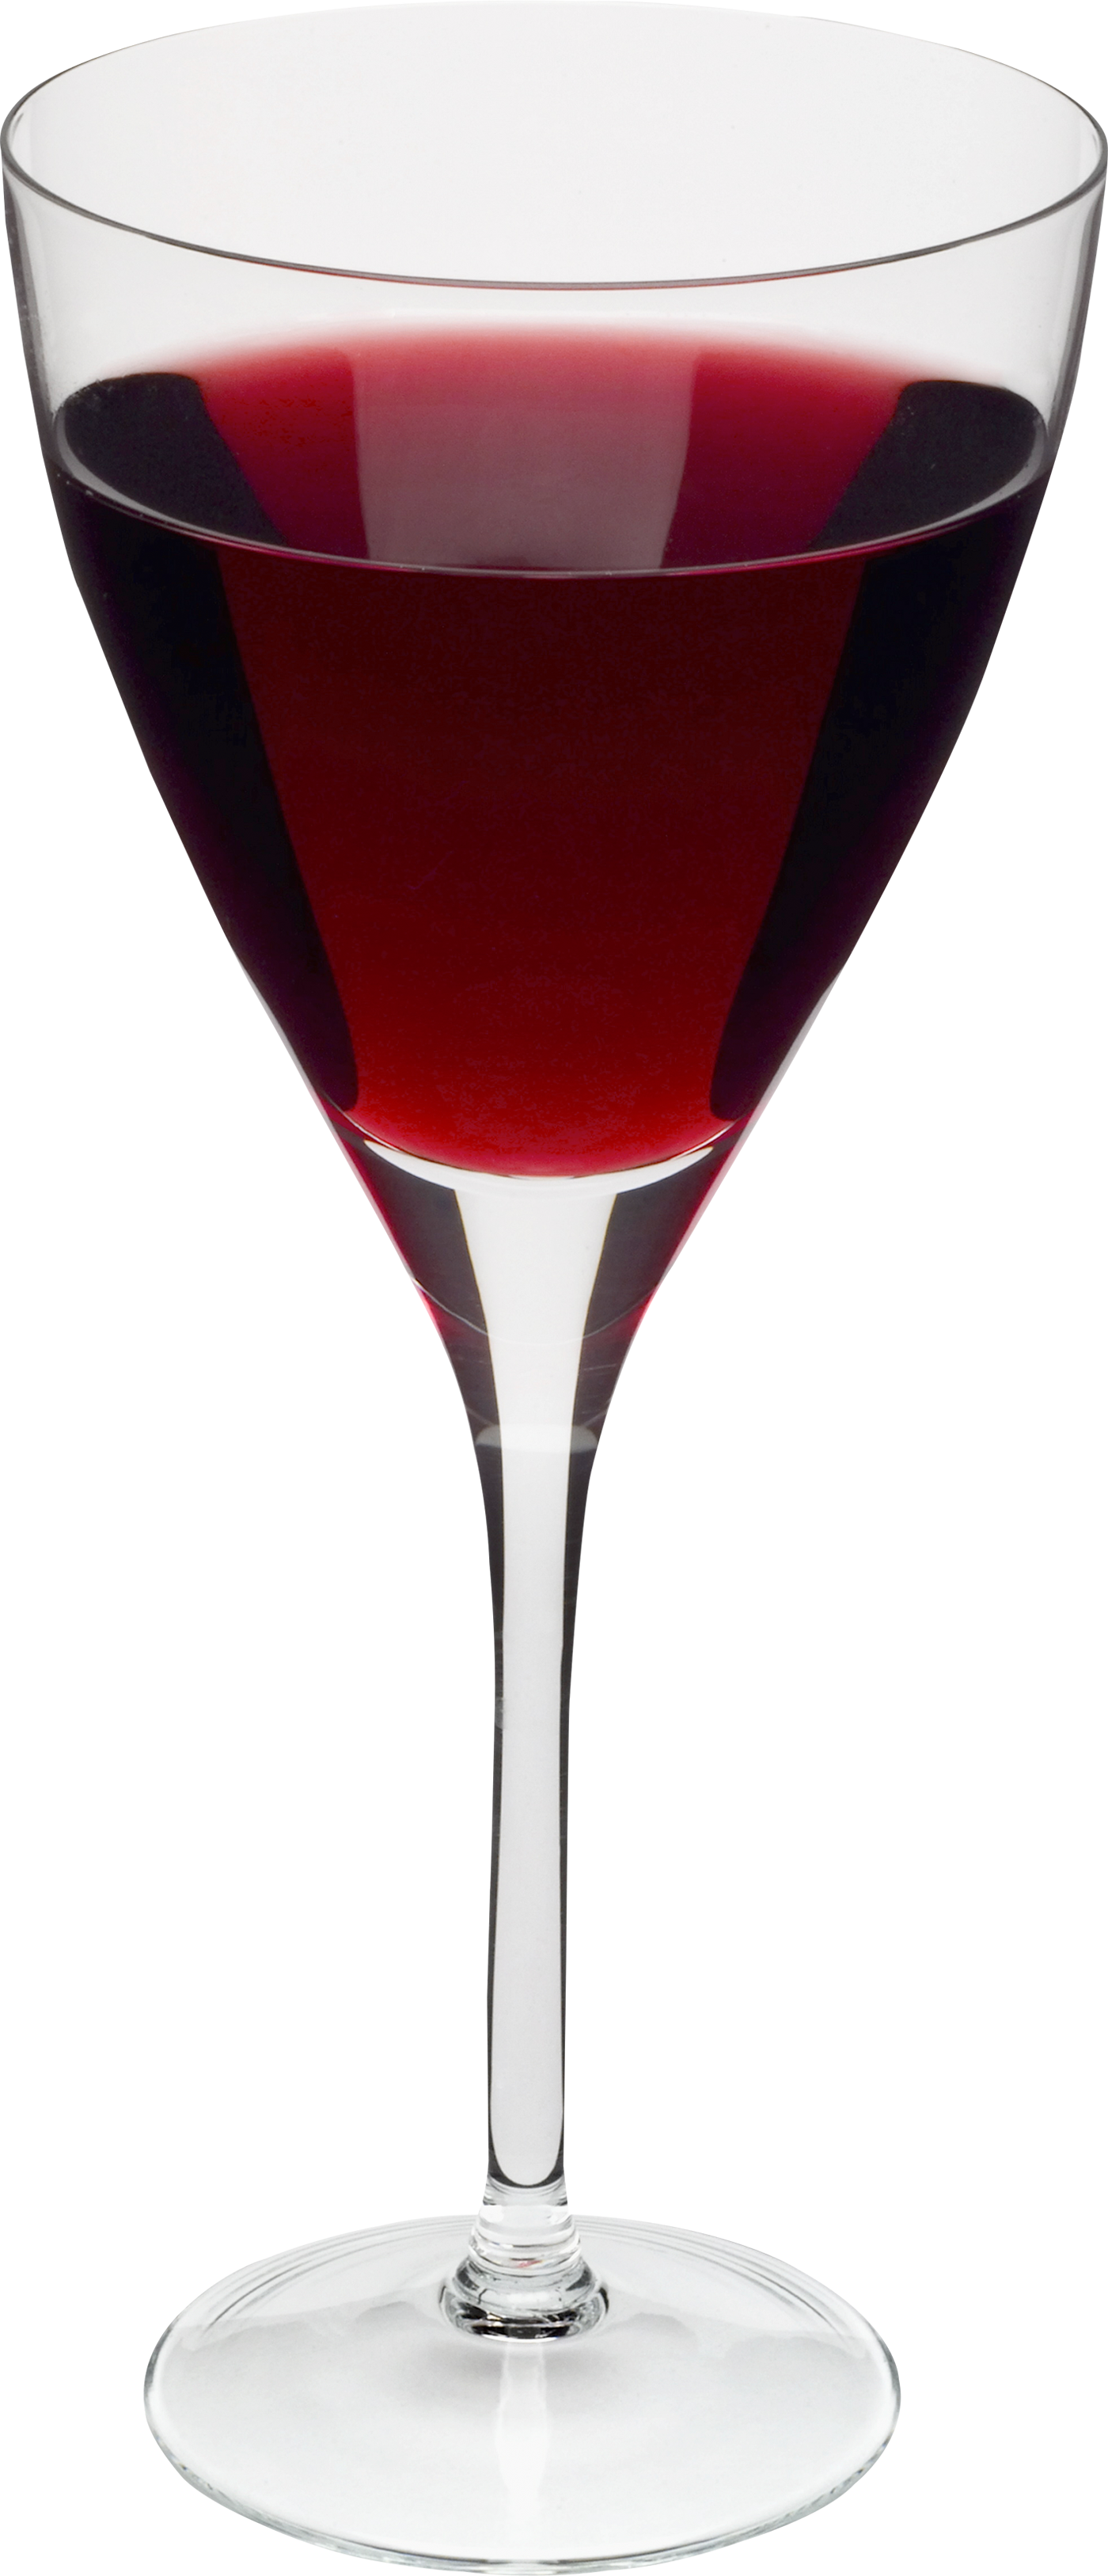 Wineglass large drink alkohol. Drinking clipart winery